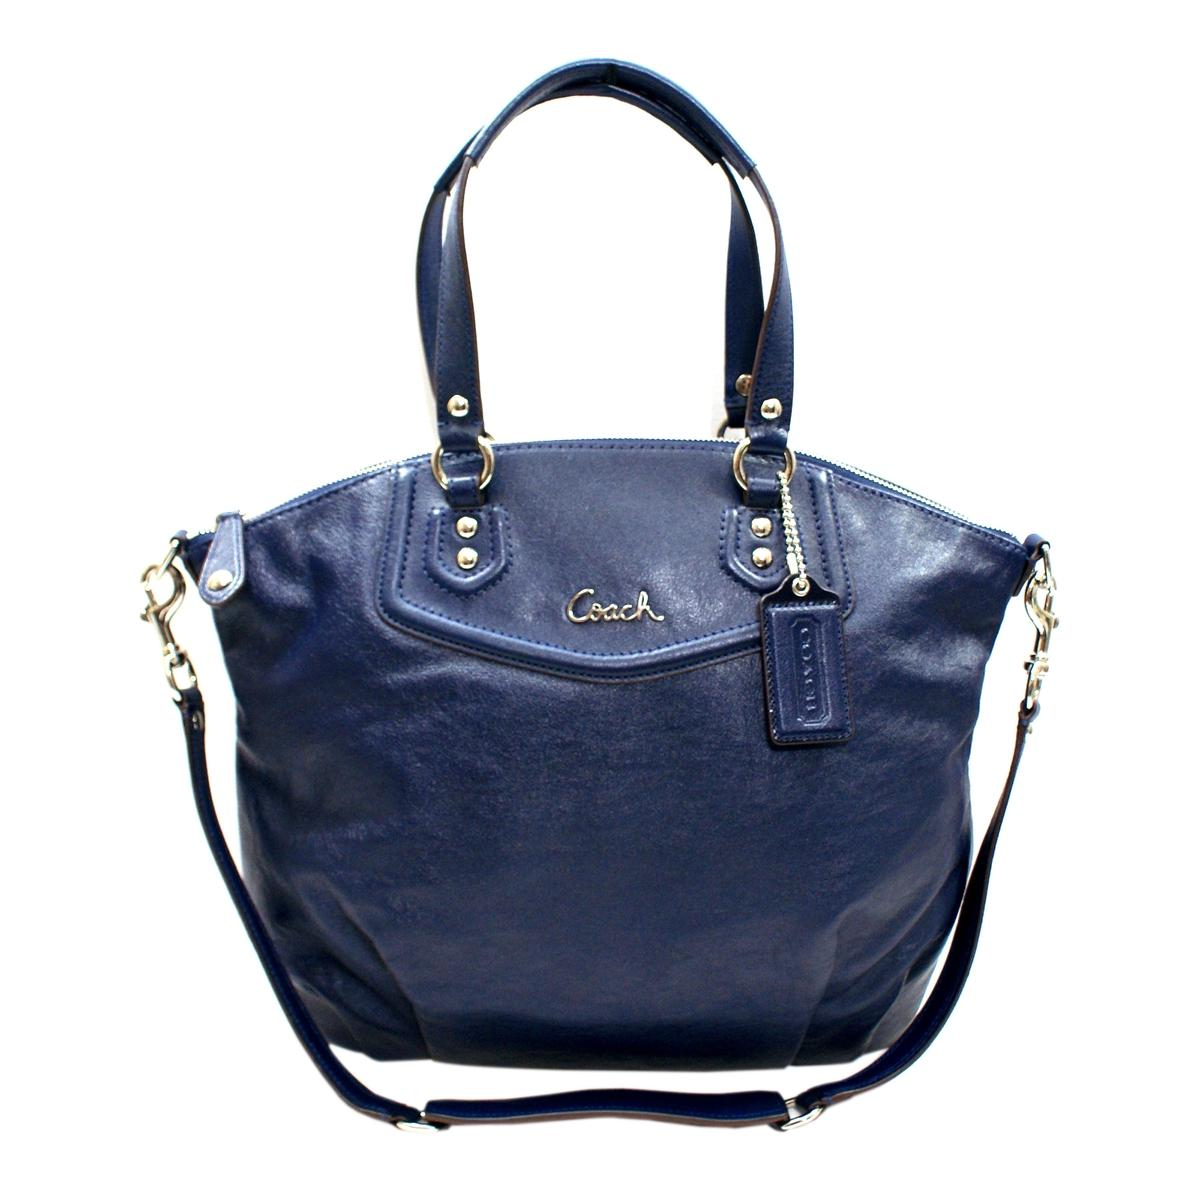 FABULOUS Dooney Navy Florentine Italian Leather Satchel (Med on Tag, more Large in Person) Brand New with tags, Reg. Card and dust bag RARE and Only 1 Navy Available (I also have Natural Brown and chestnut).